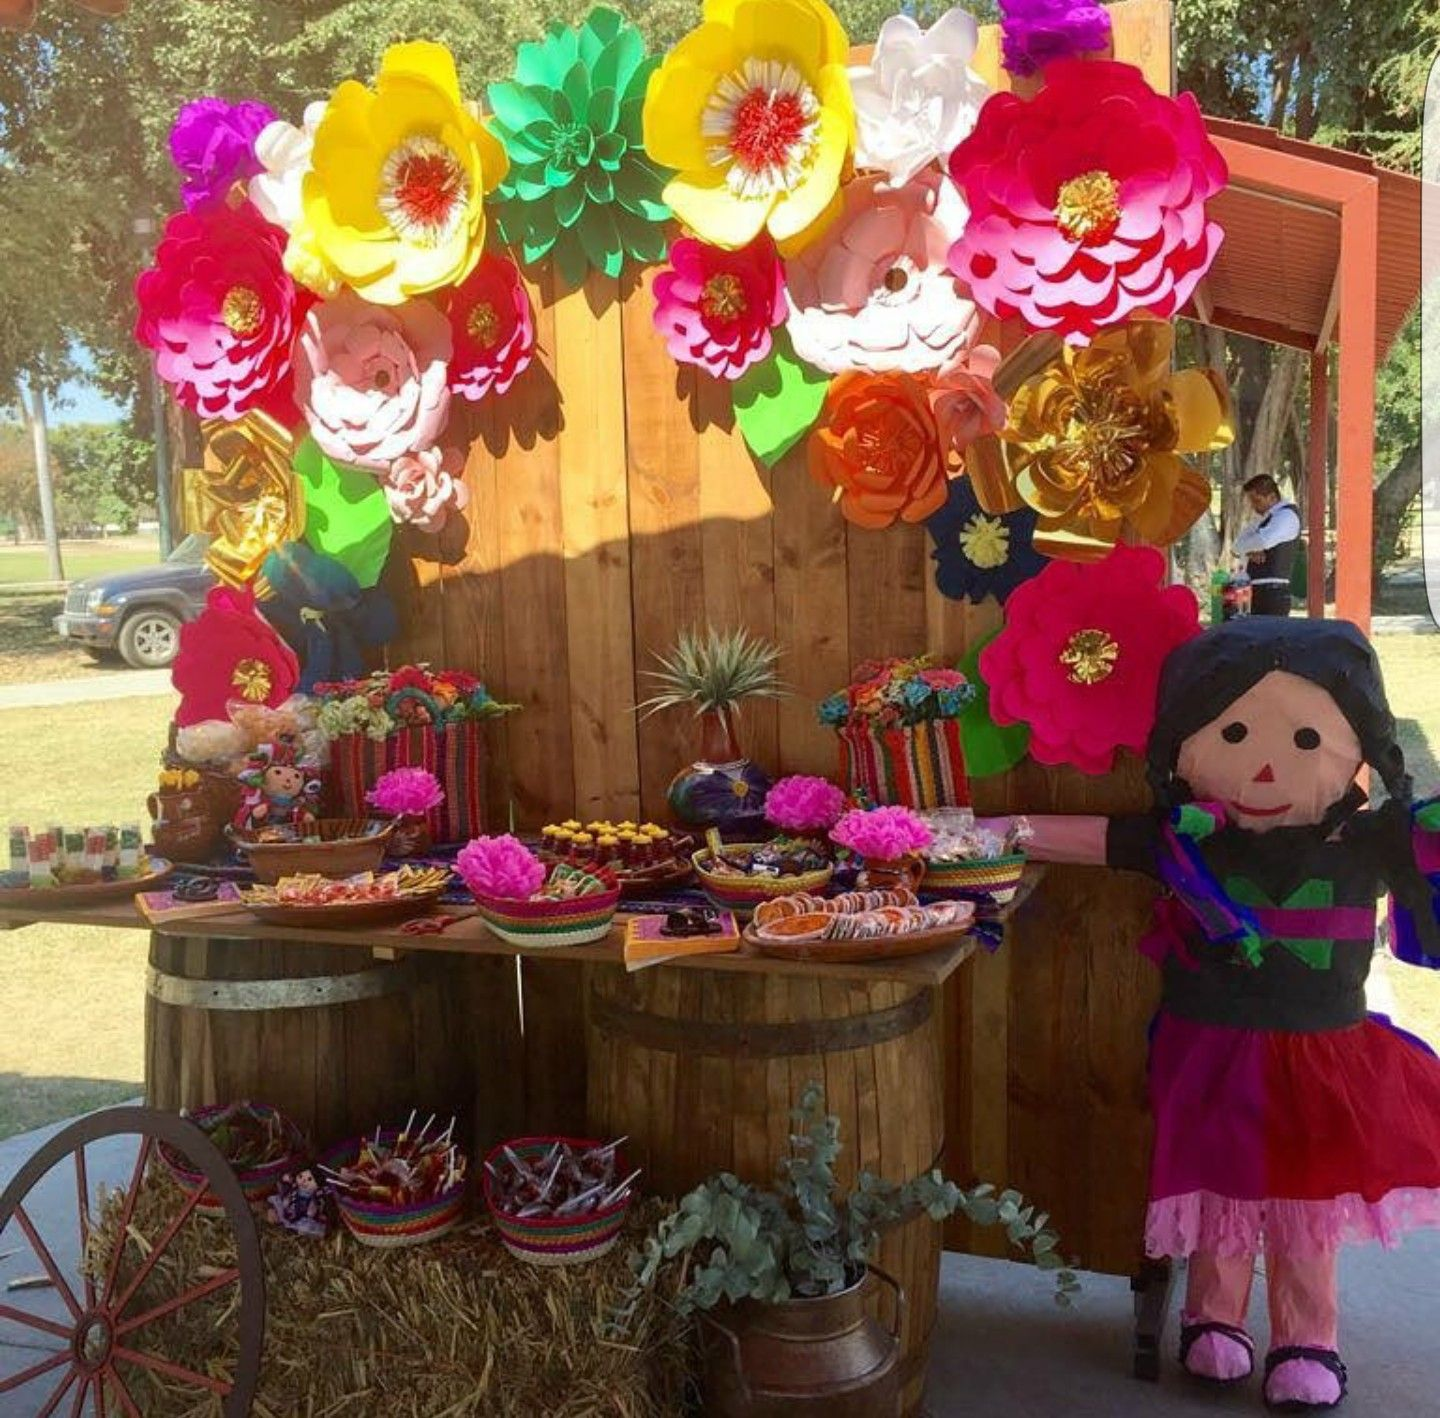 Pin by iris hernandez on fiesta mexicana pinterest for Decoracion kermes mexicana